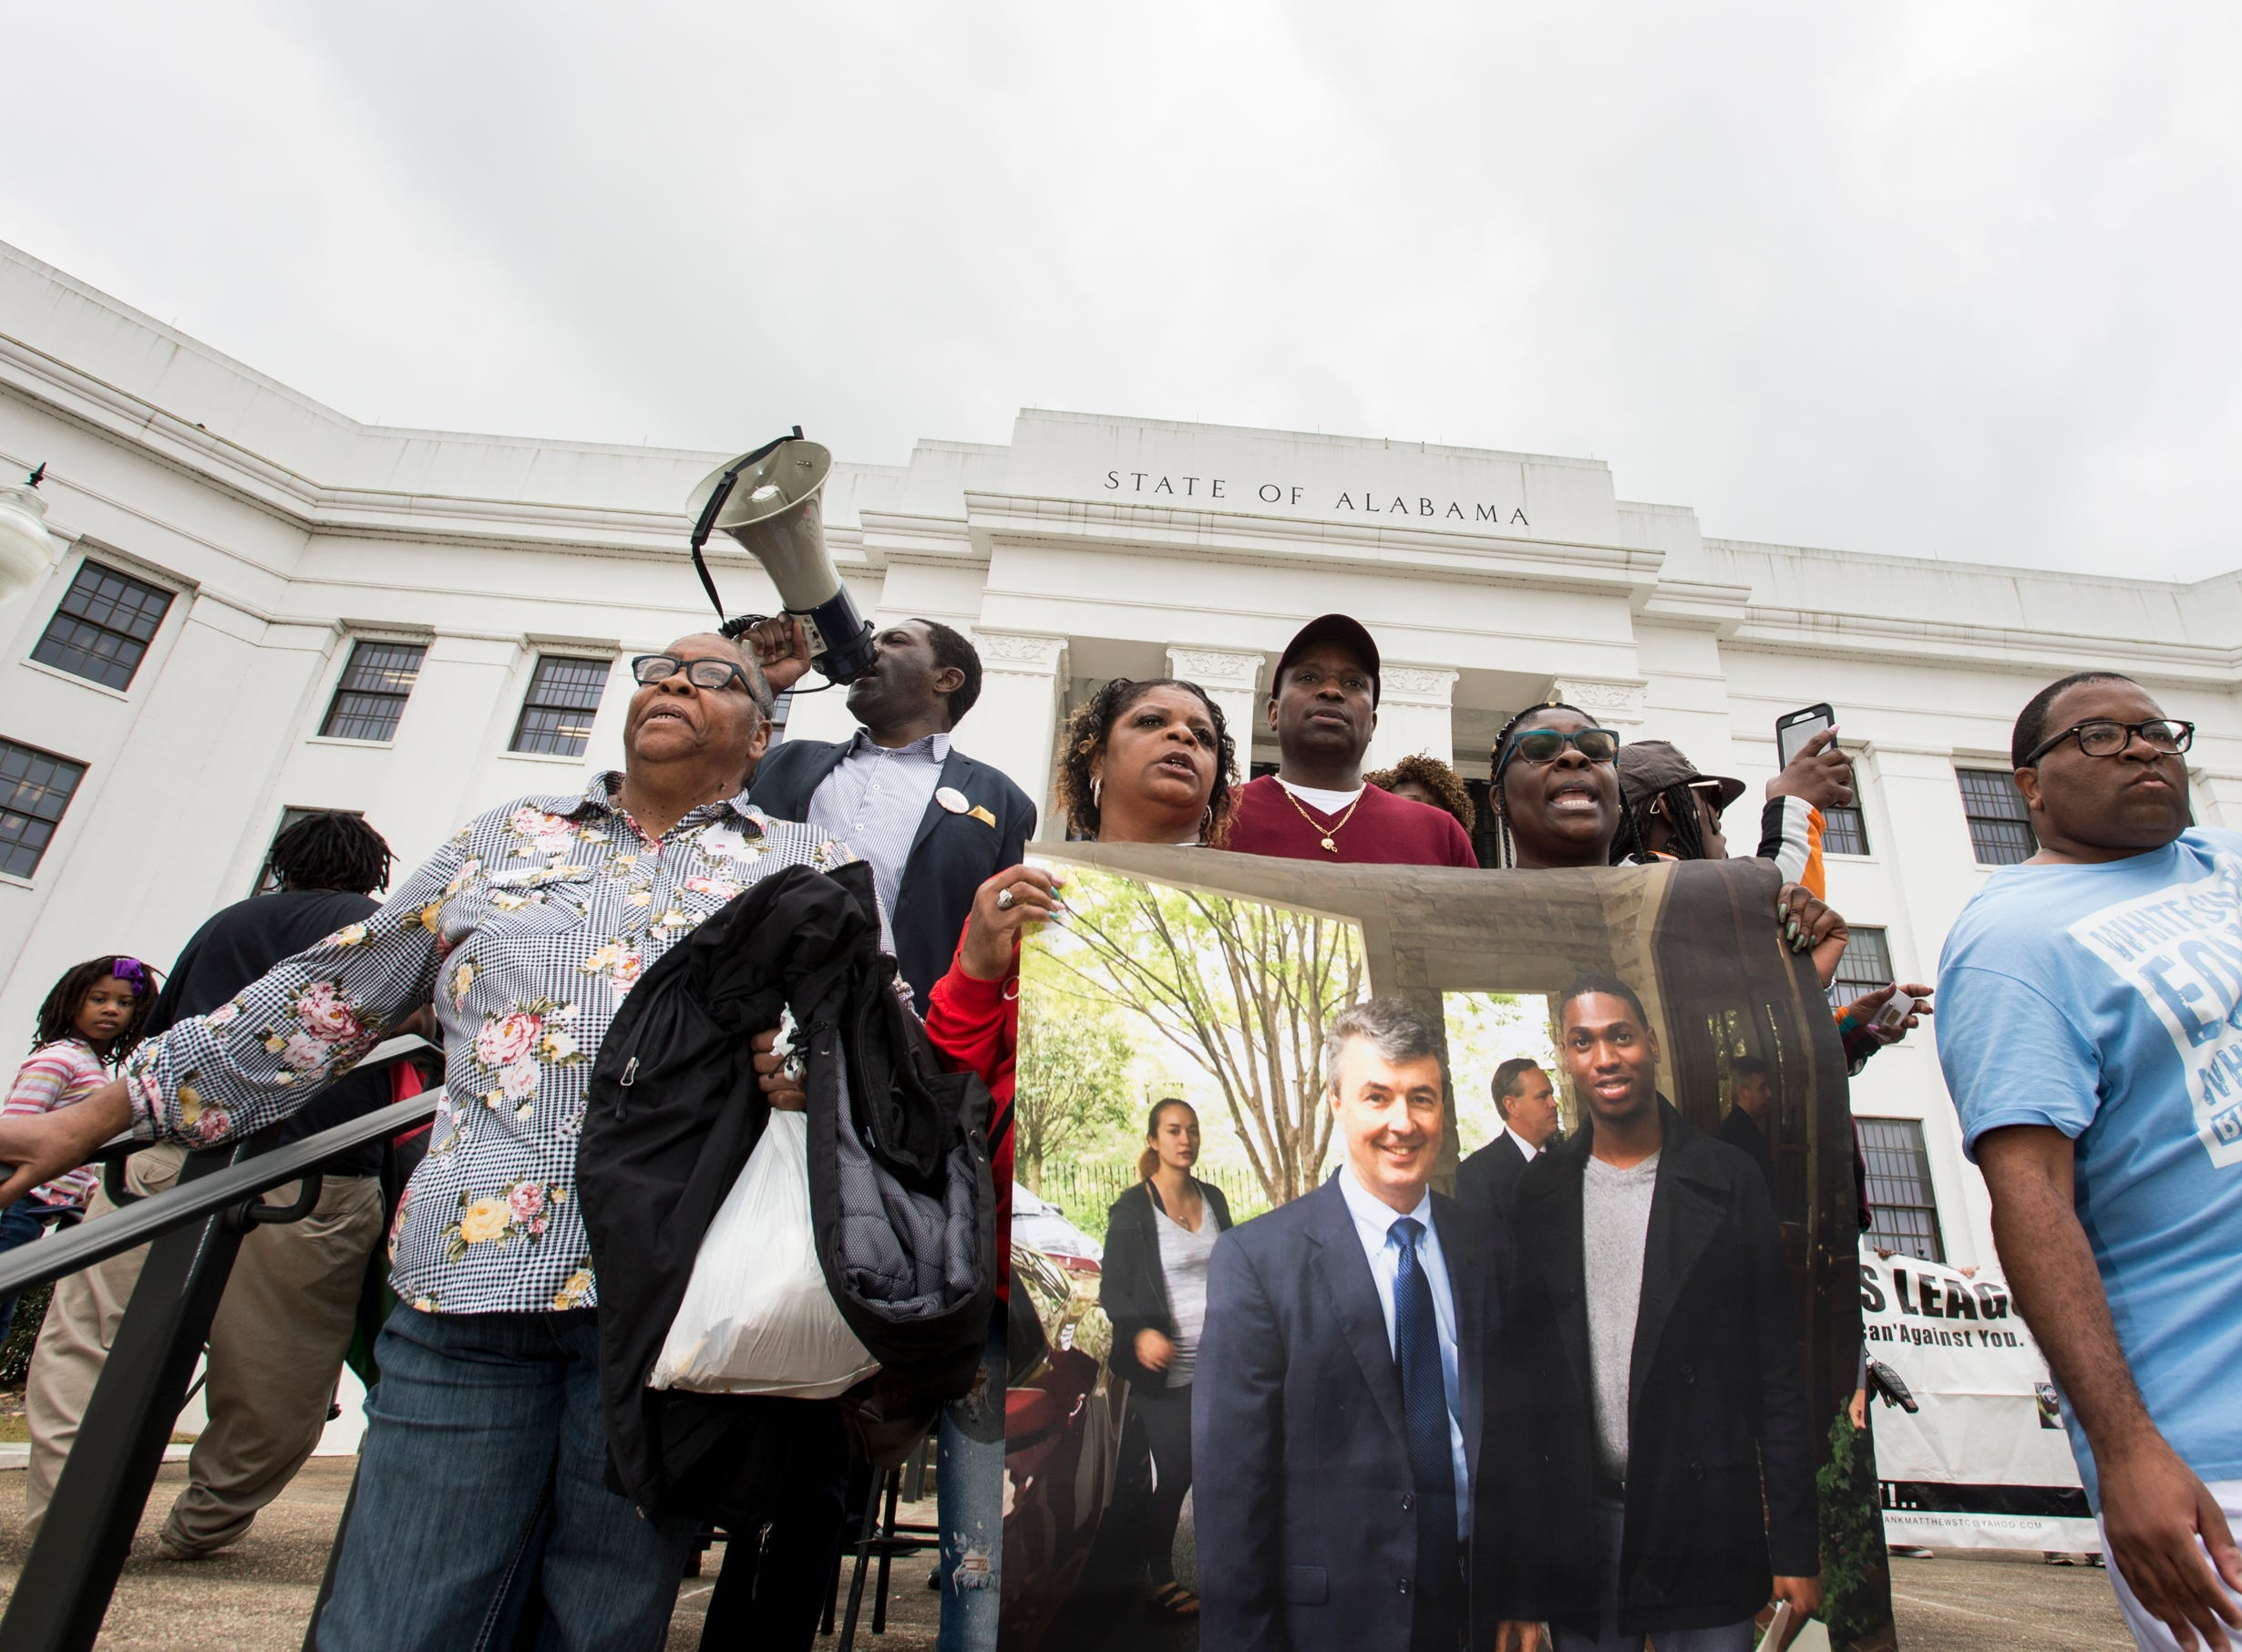 EJ Bradford's family lines up on the steps of the Attorney General's office during a protest in Montgomery, Ala., on Wednesday, Feb. 6, 2019. EJ Bradford was shot and killed by police Nov. 22, 2018 in a Hoover, Ala. mall. Alabama Attorney General Steve Marshall announced Tuesday there would be no charges filed against the officer involved in the shooting.